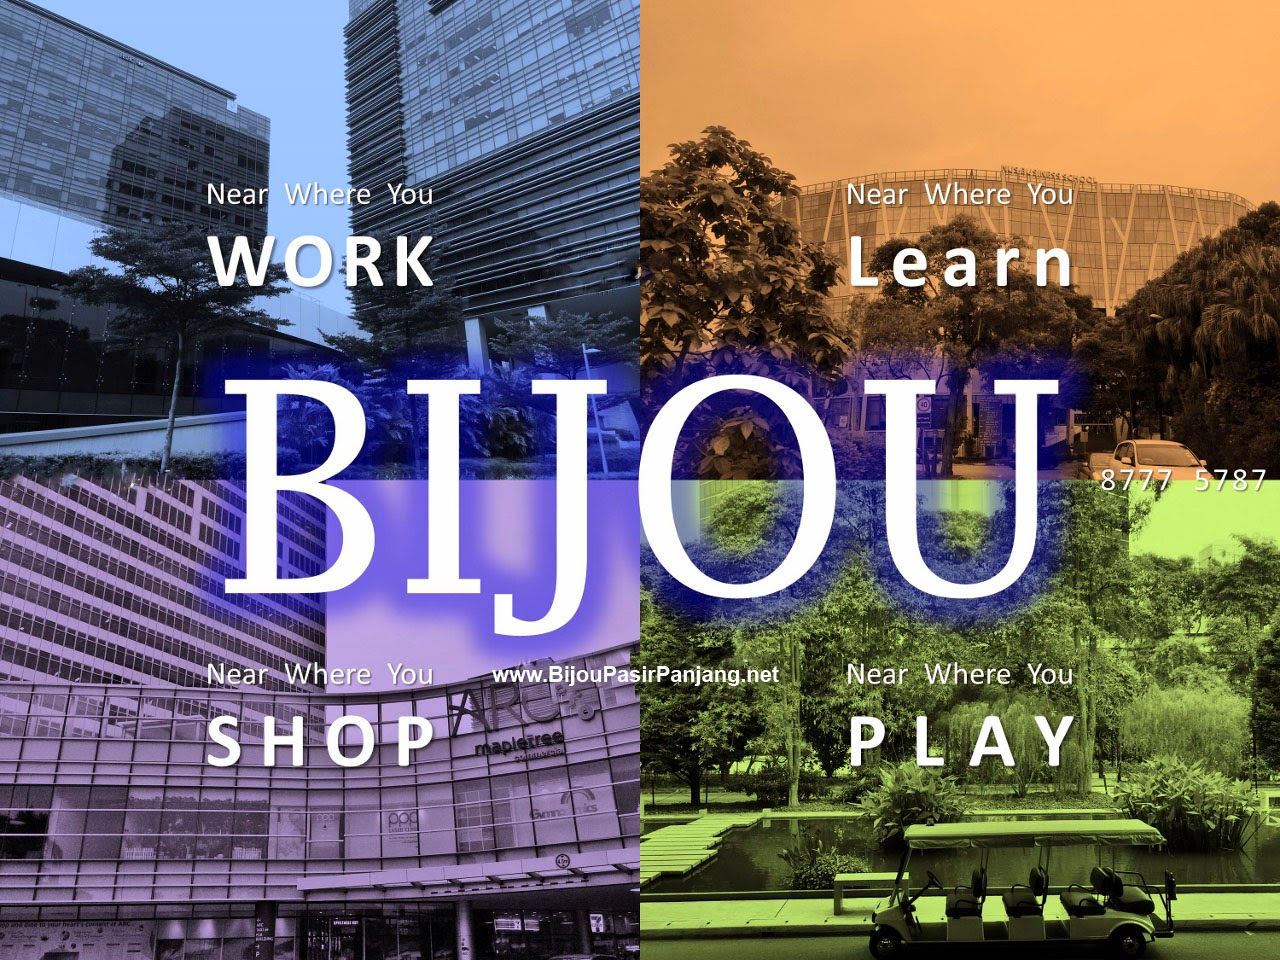 BIJOU @ Pasir Panjang - a place to work and live and shop